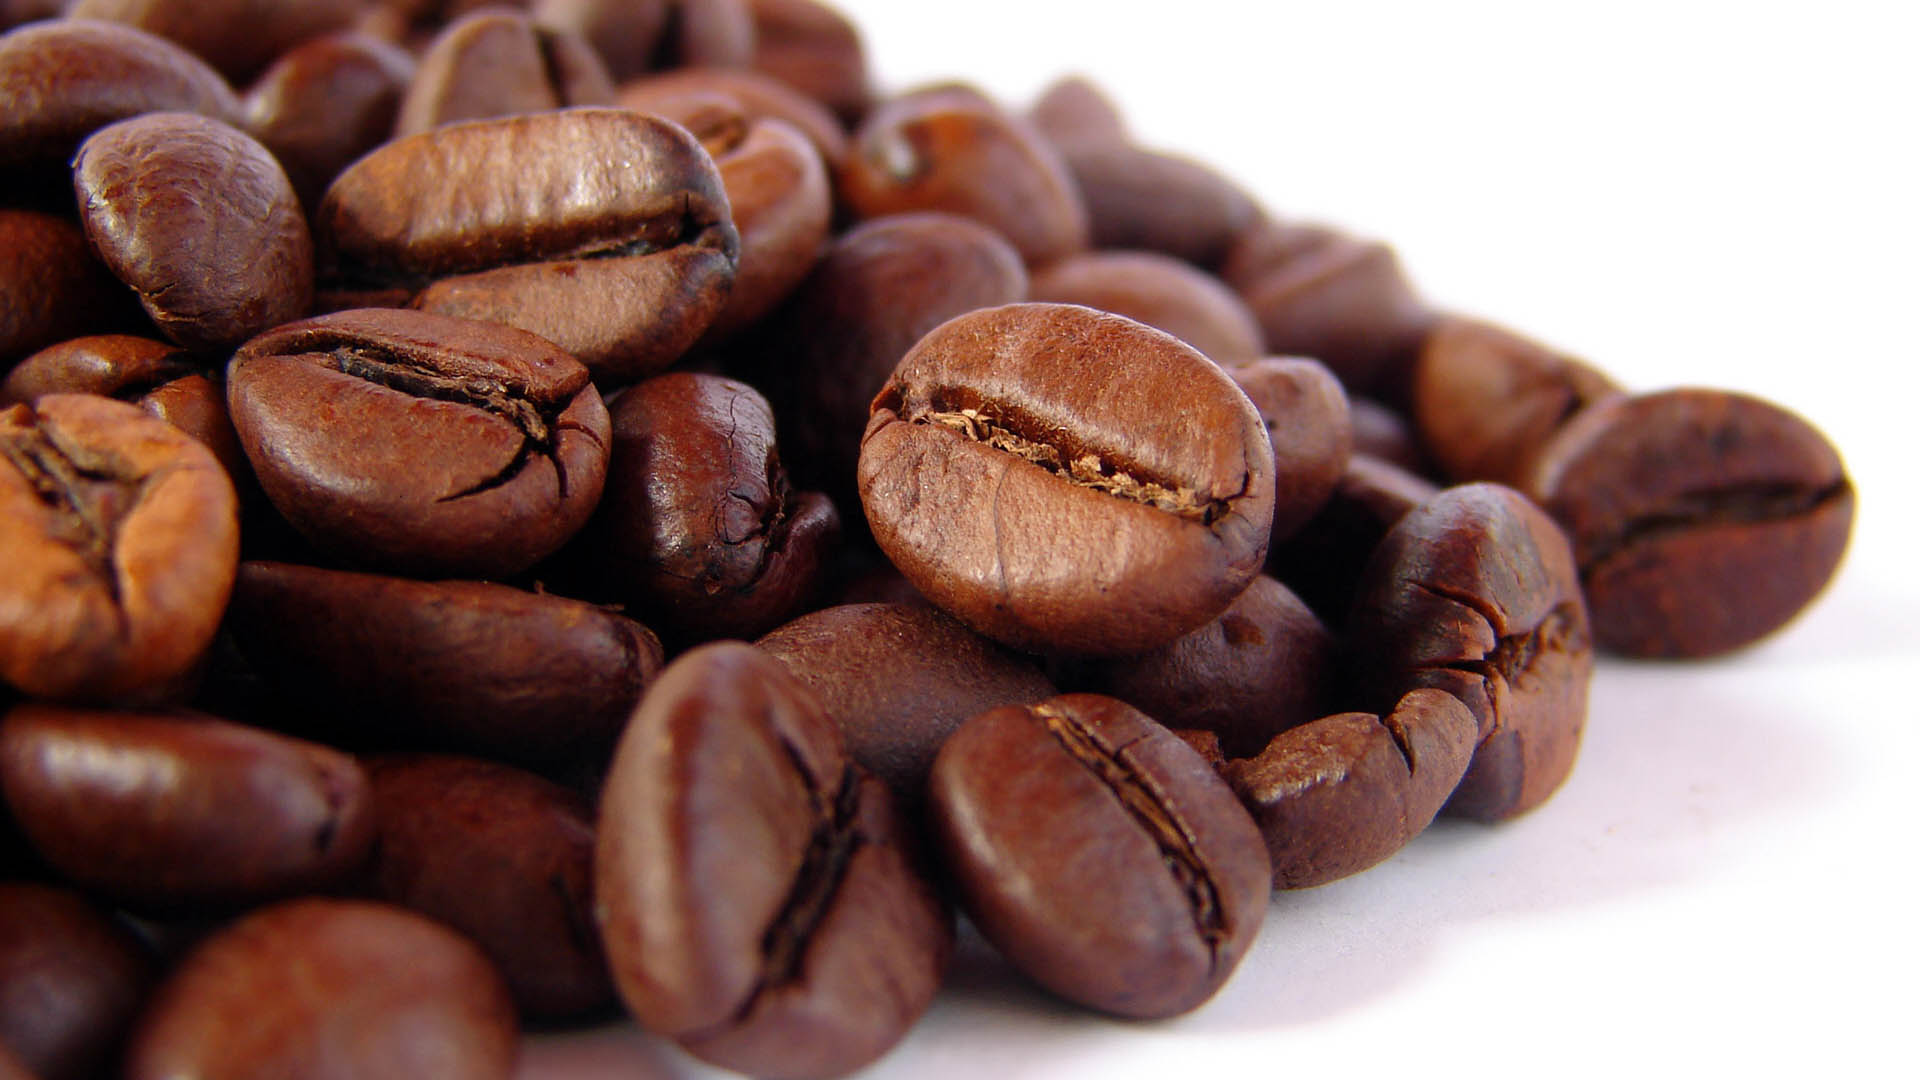 Coffee Beans Wallpaper HD